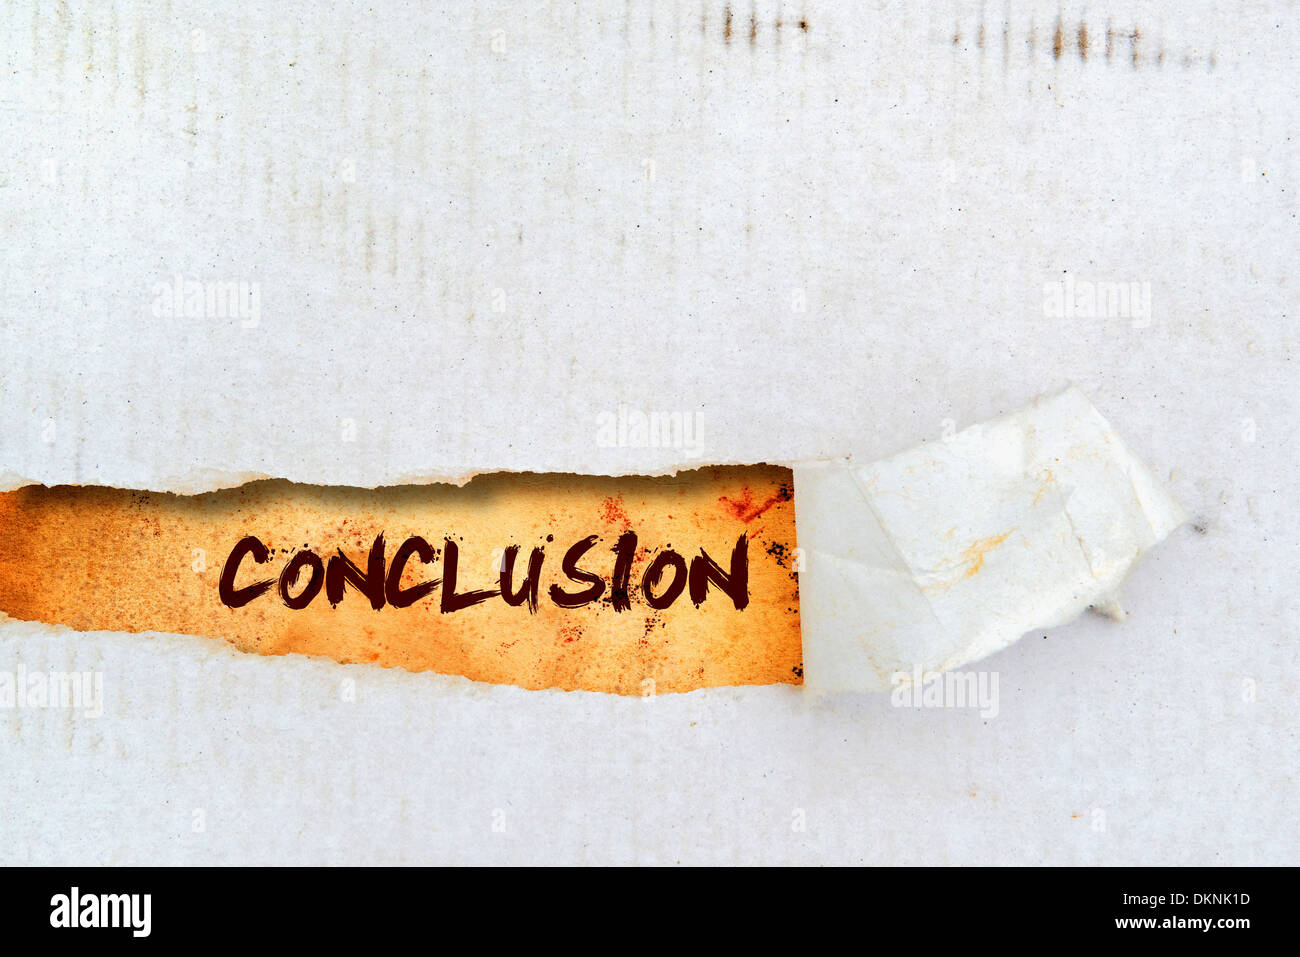 Conclusion title on old grunge torn paper - Stock Image